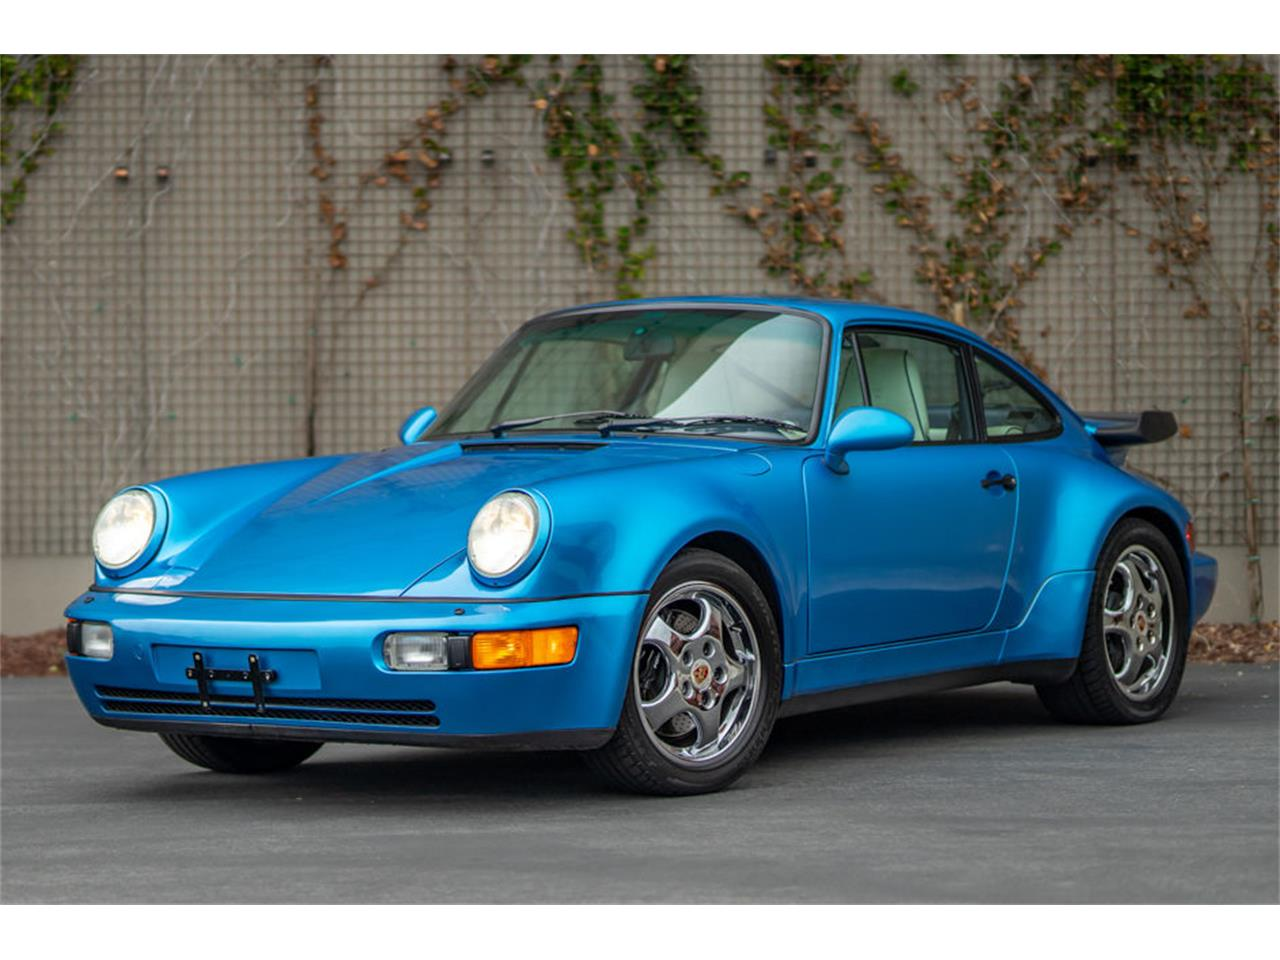 Large Picture of 1992 Porsche 911 Turbo located in Monterey California - R2P1